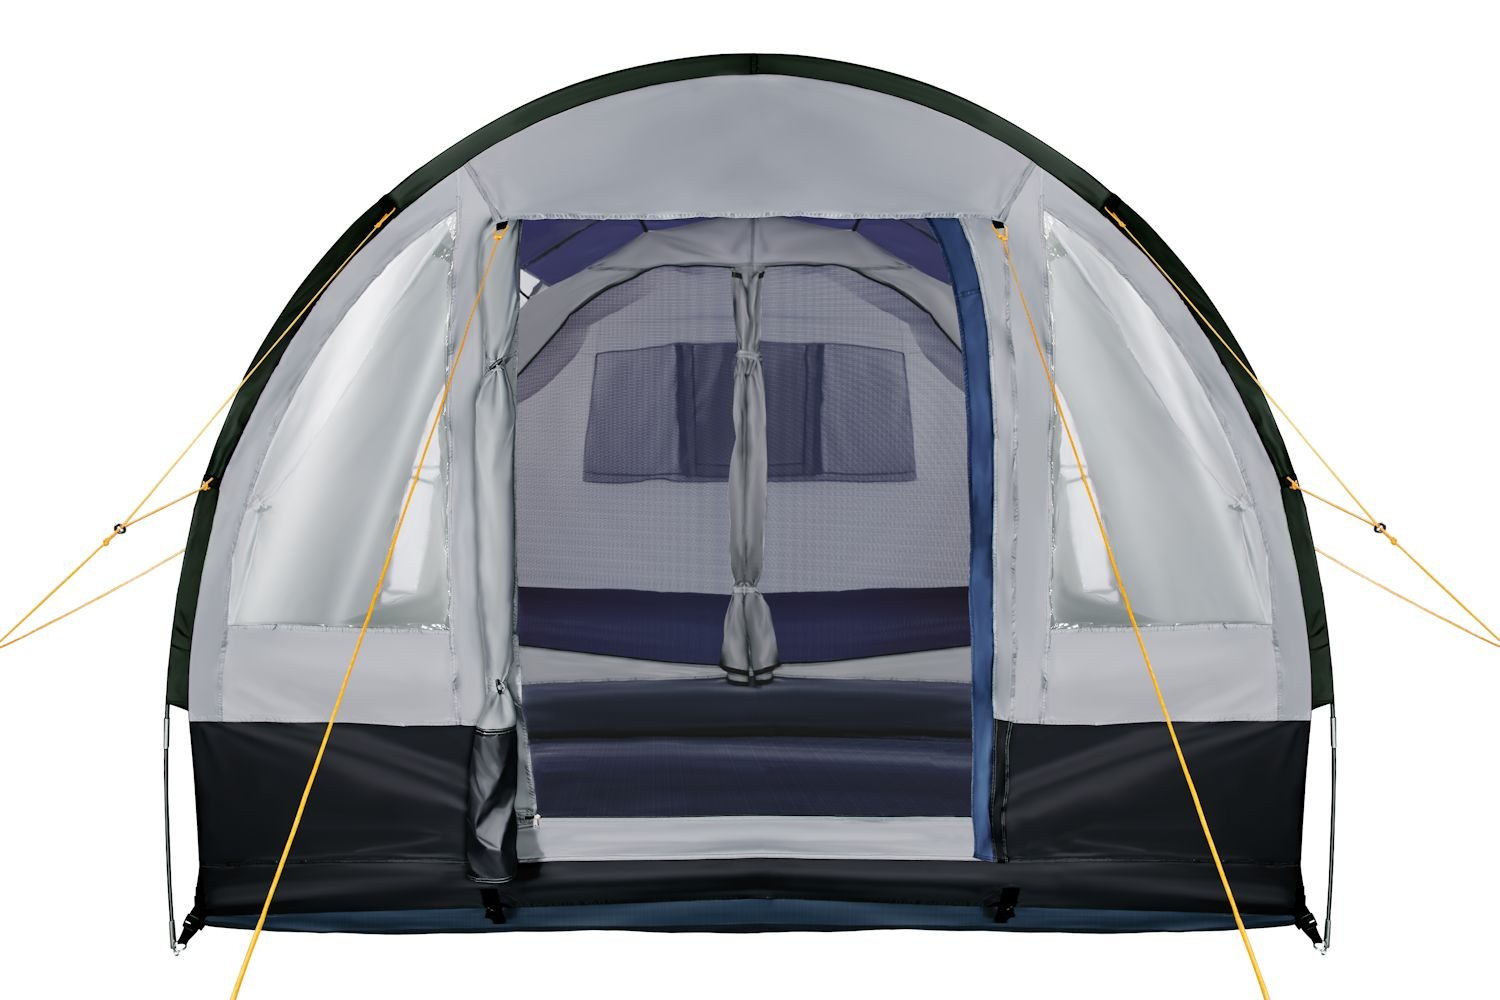 CampFeuer - Tunnel Tent, spacious Camping Tent, 510x360x210 cm, blue/grey - Version 2 3